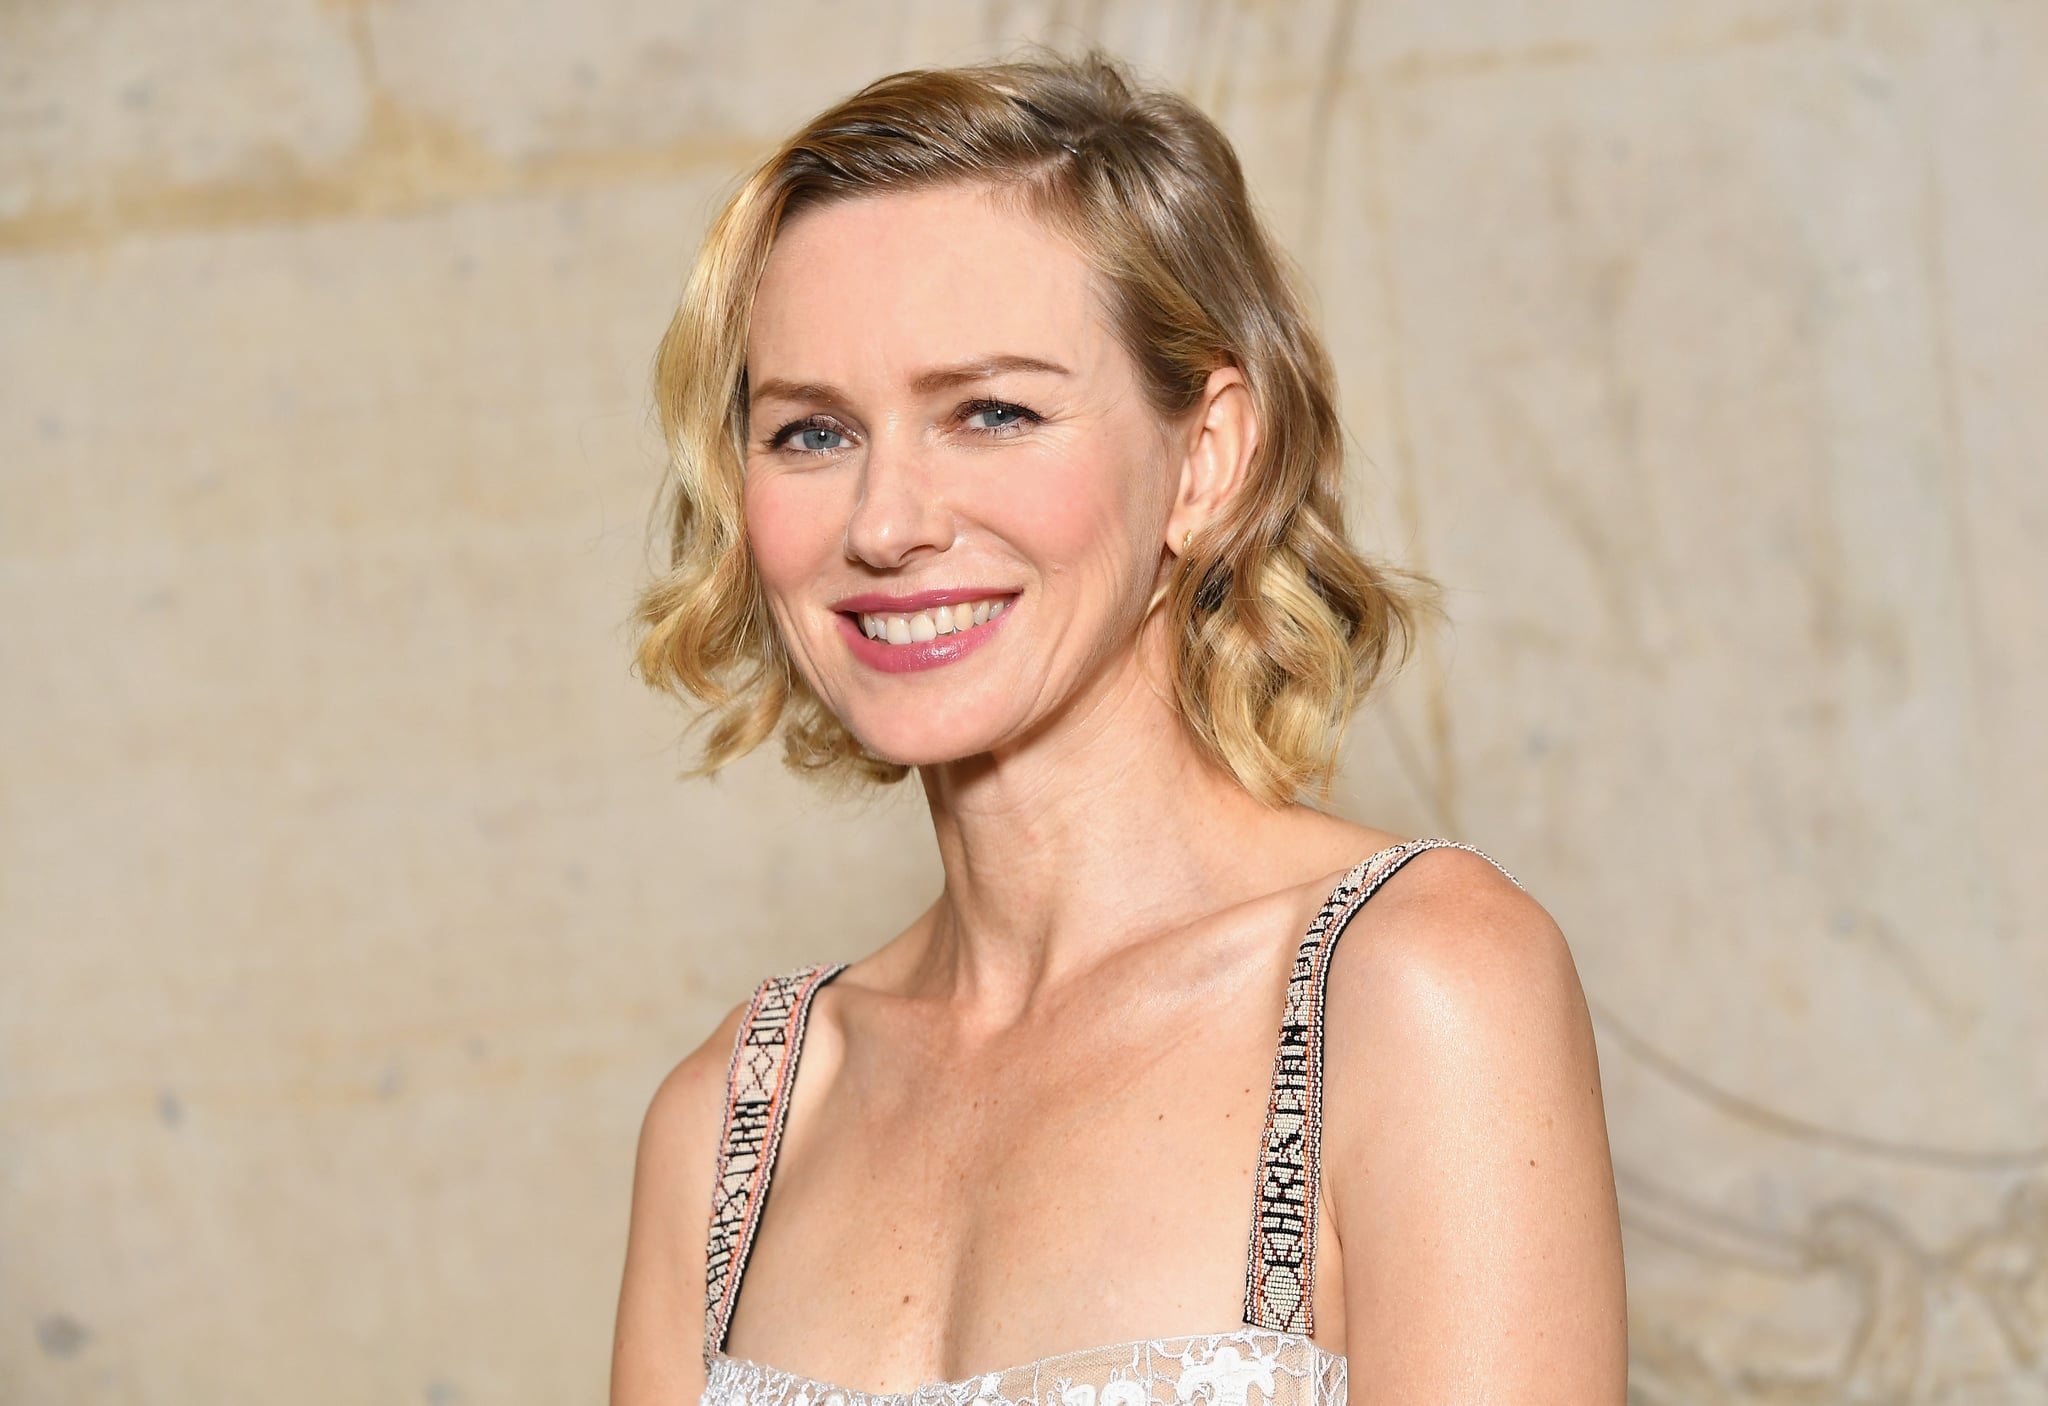 PARIS, FRANCE - SEPTEMBER 26:  (EDITORS NOTE: This image has been retouched for shine) Naomi Watts attends the Christian Dior show as part of the Paris Fashion Week Womenswear Spring/Summer 2018 on September 26, 2017 in Paris, France.  (Photo by Pascal Le Segretain/Getty Images for Dior)